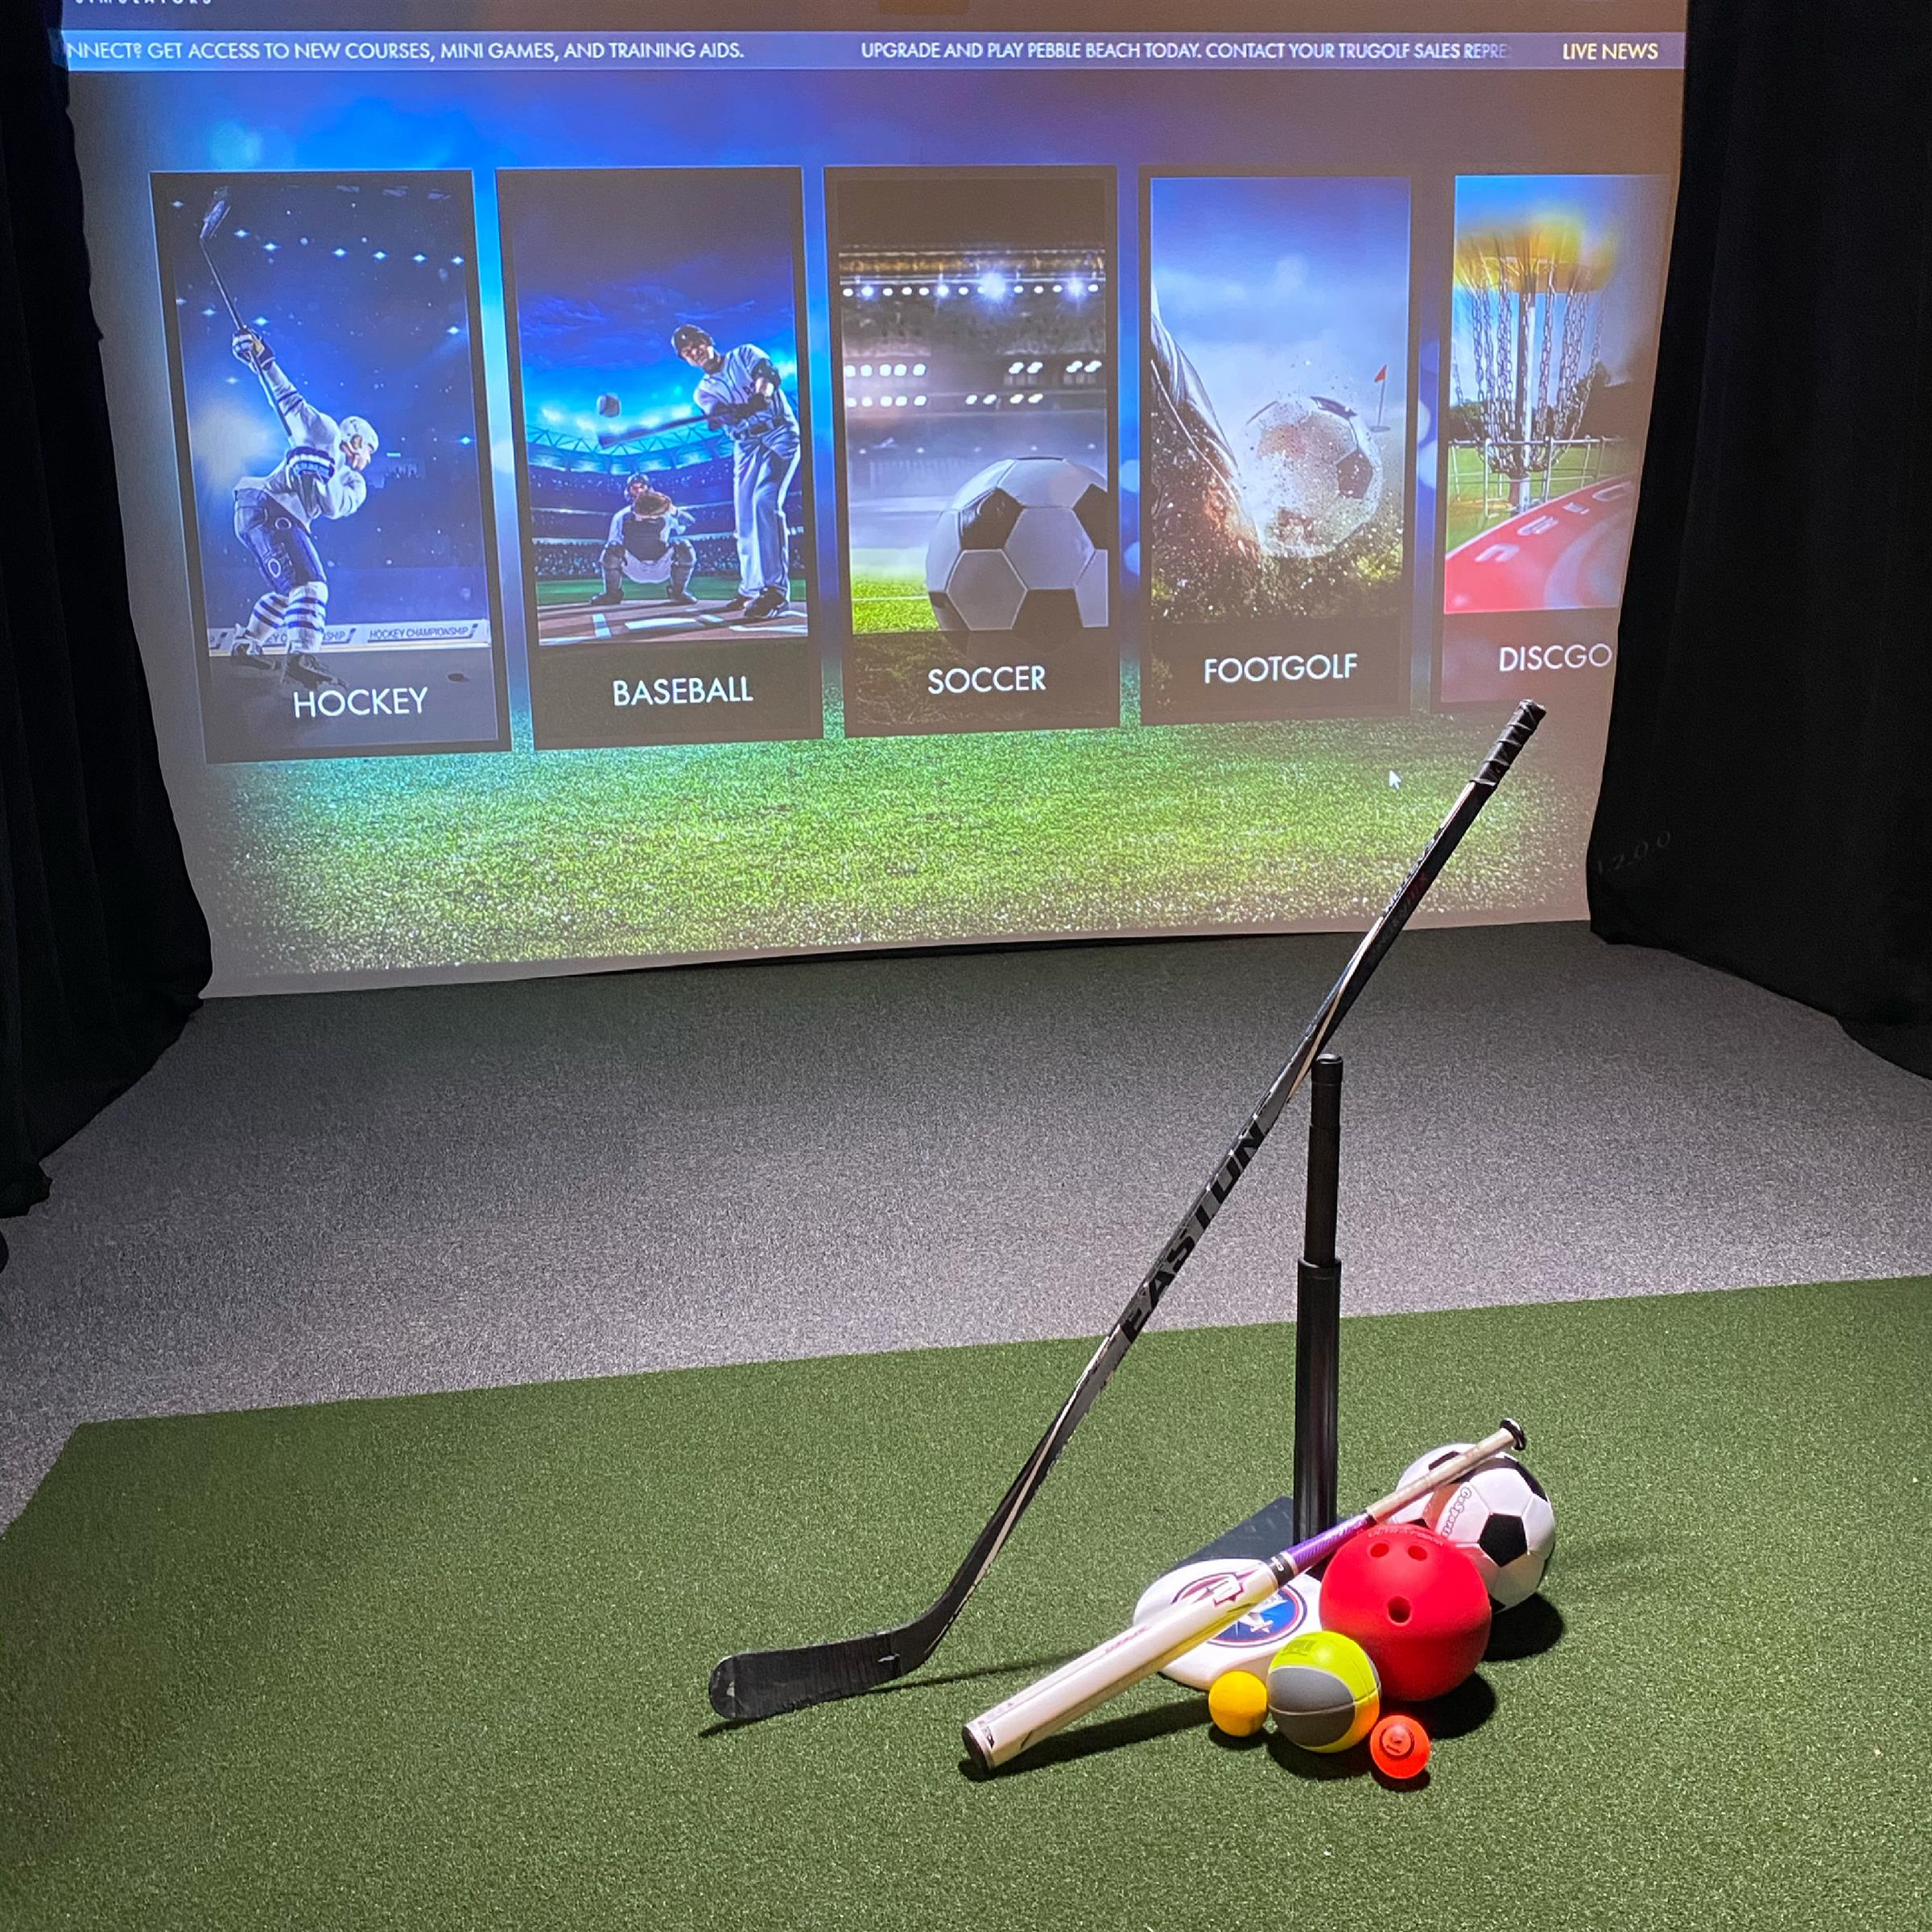 Simulator Suite with hockey stick, tee ball set, soccer ball, frisbee, bowling ball, and other sports equipment